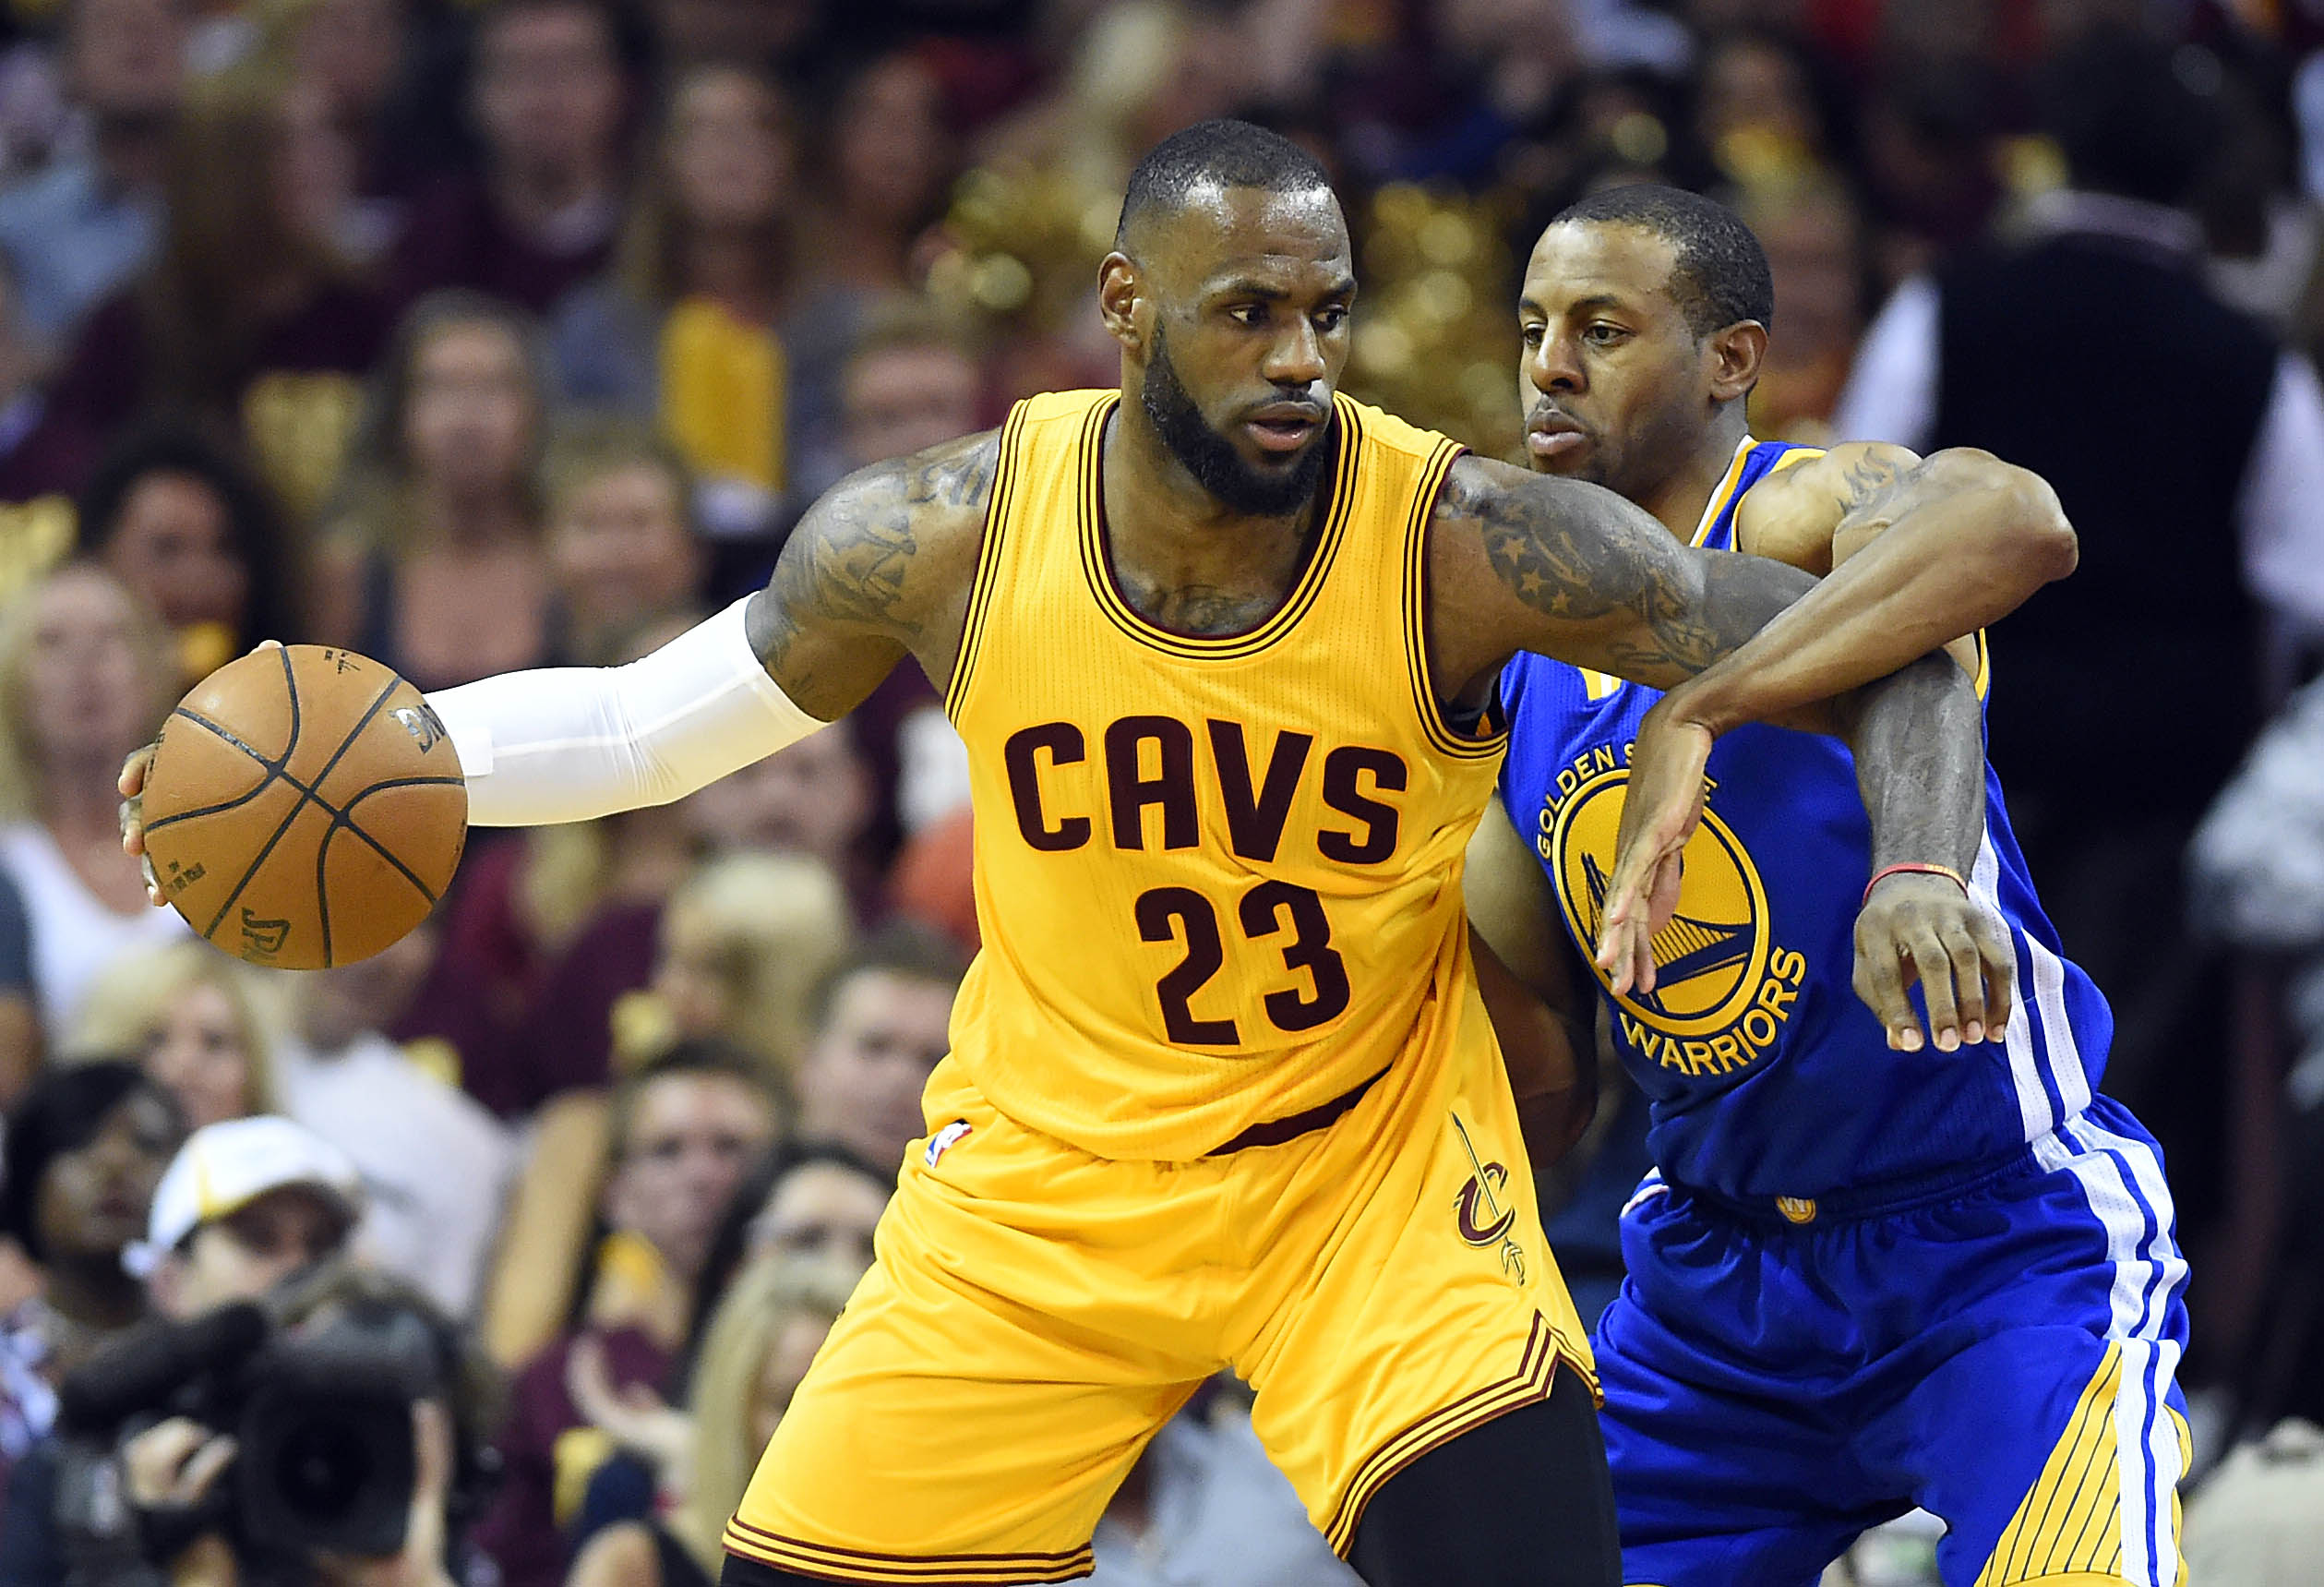 LeBron James (23) handles the ball against Golden State Warriors guard  Andre Iguodala ( 75b63579a